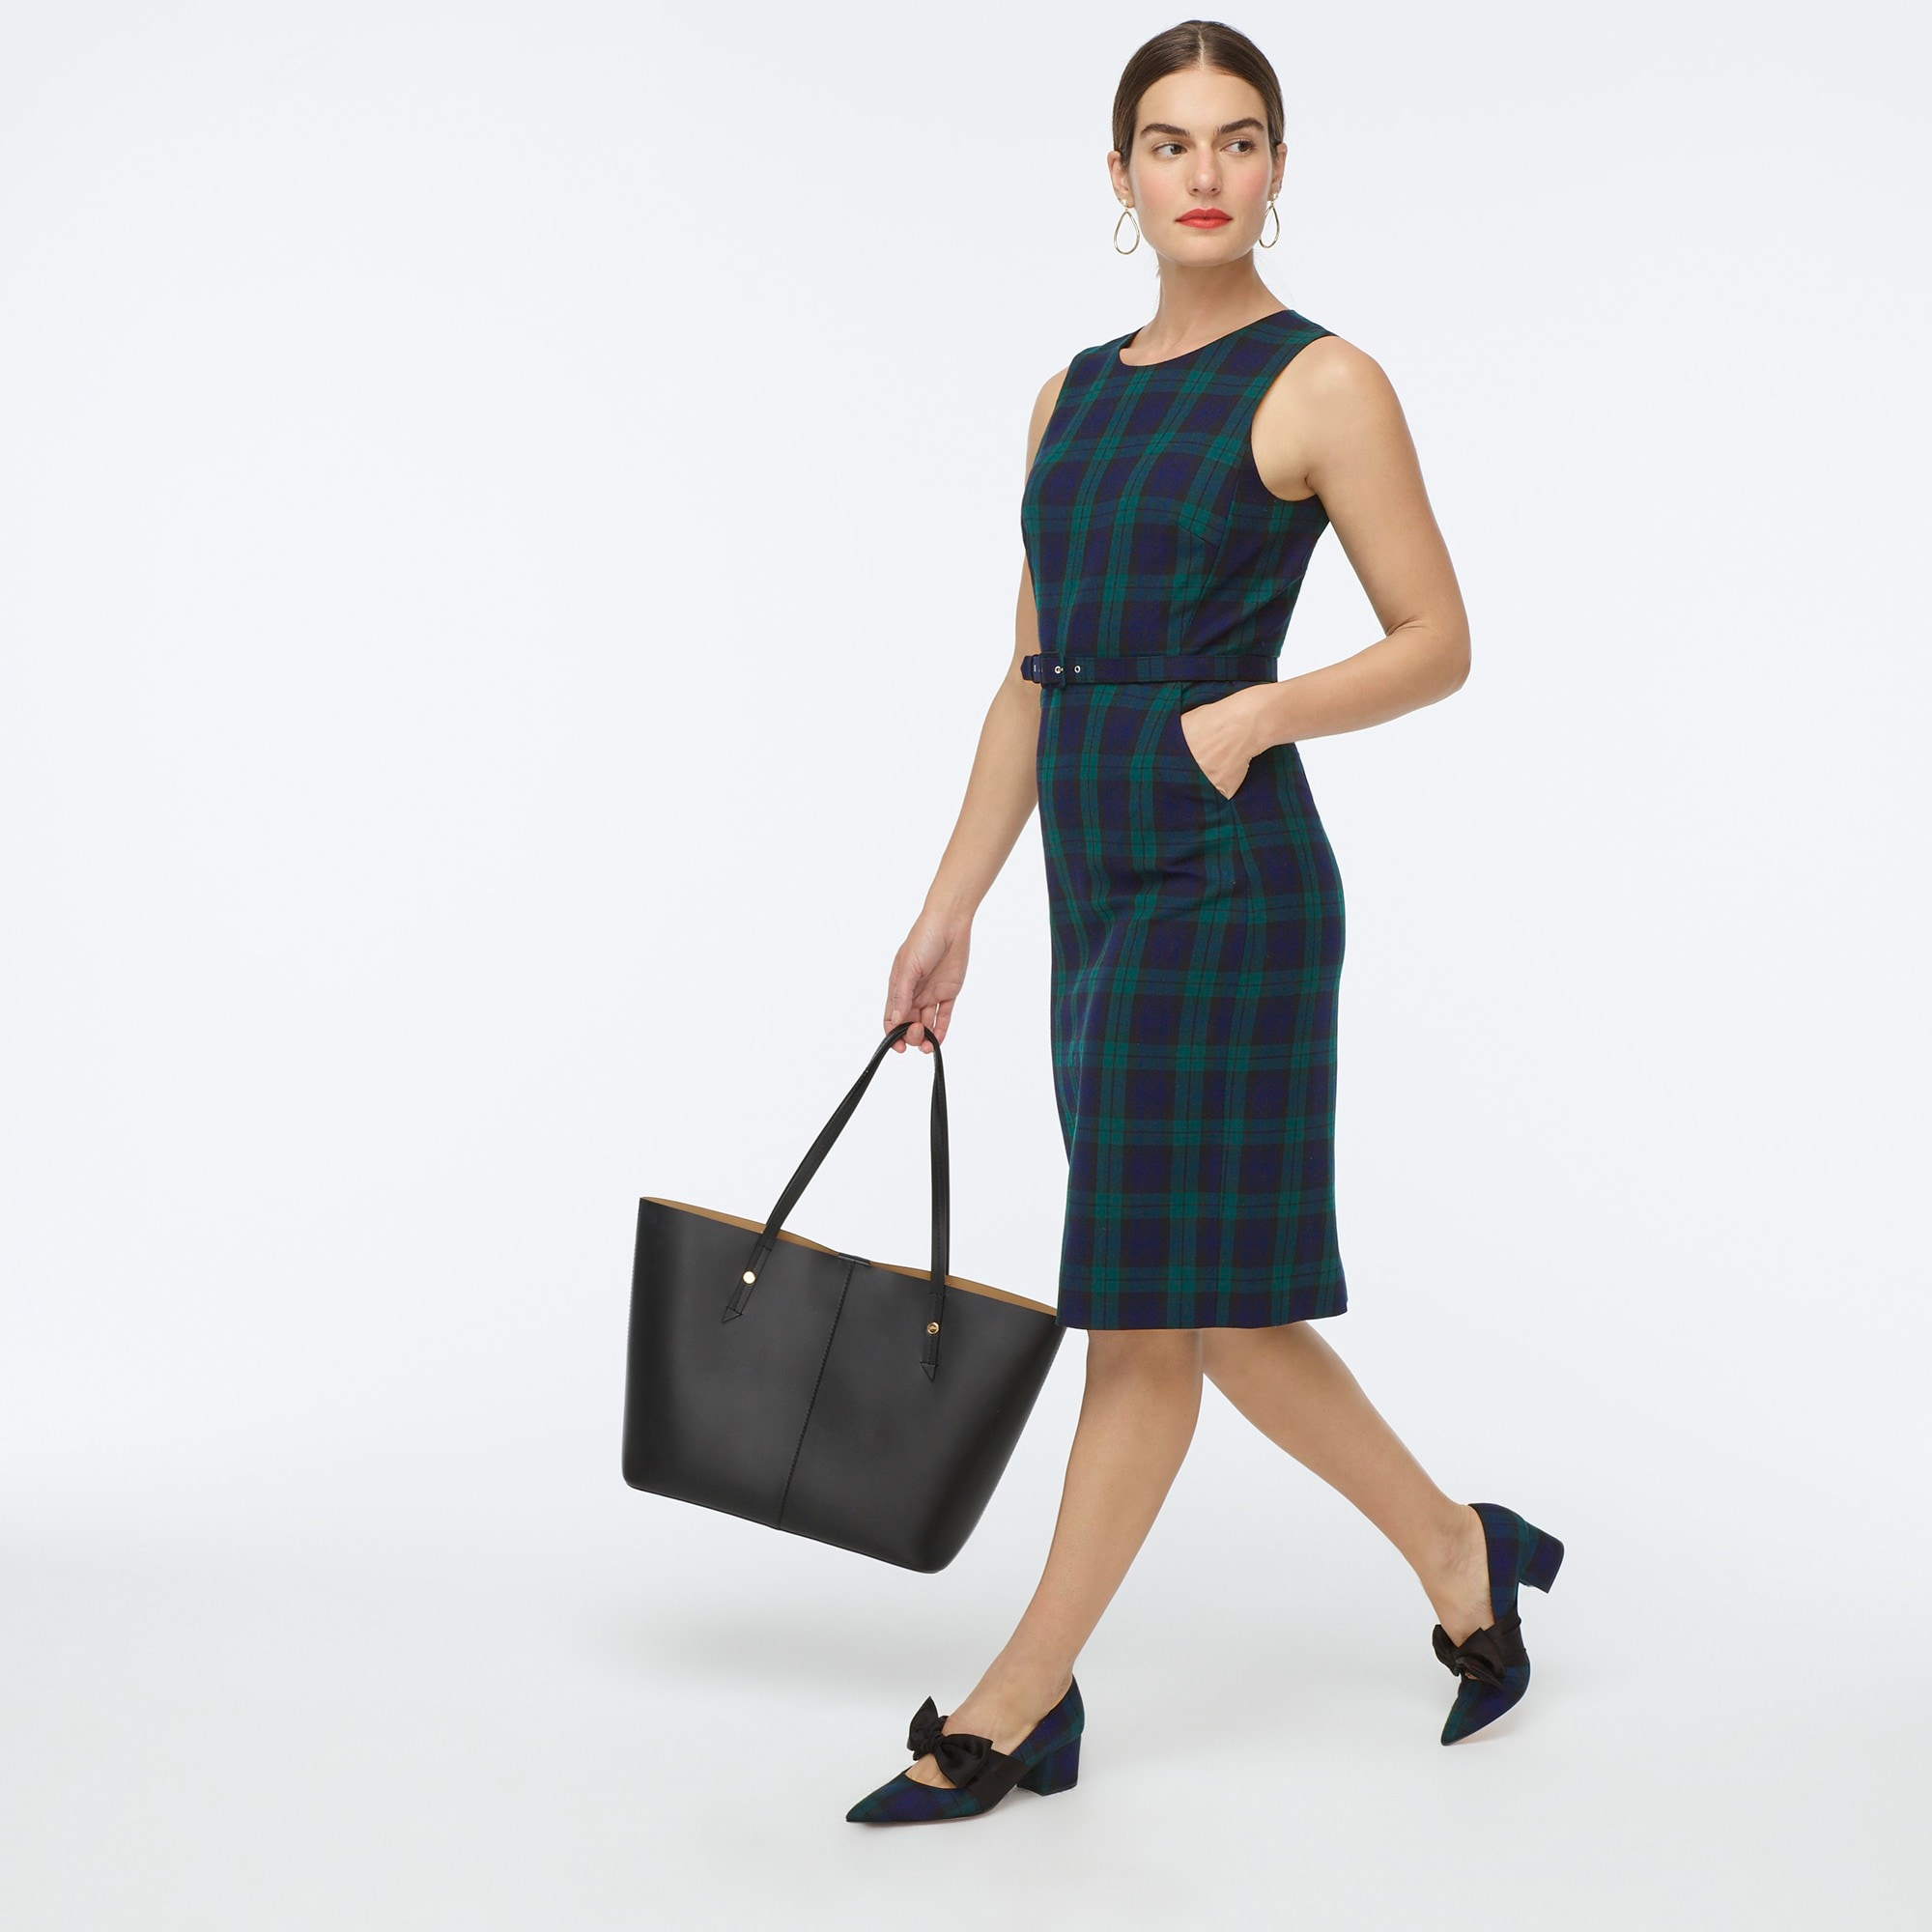 womens Belted sheath dress in Black Watch tartan